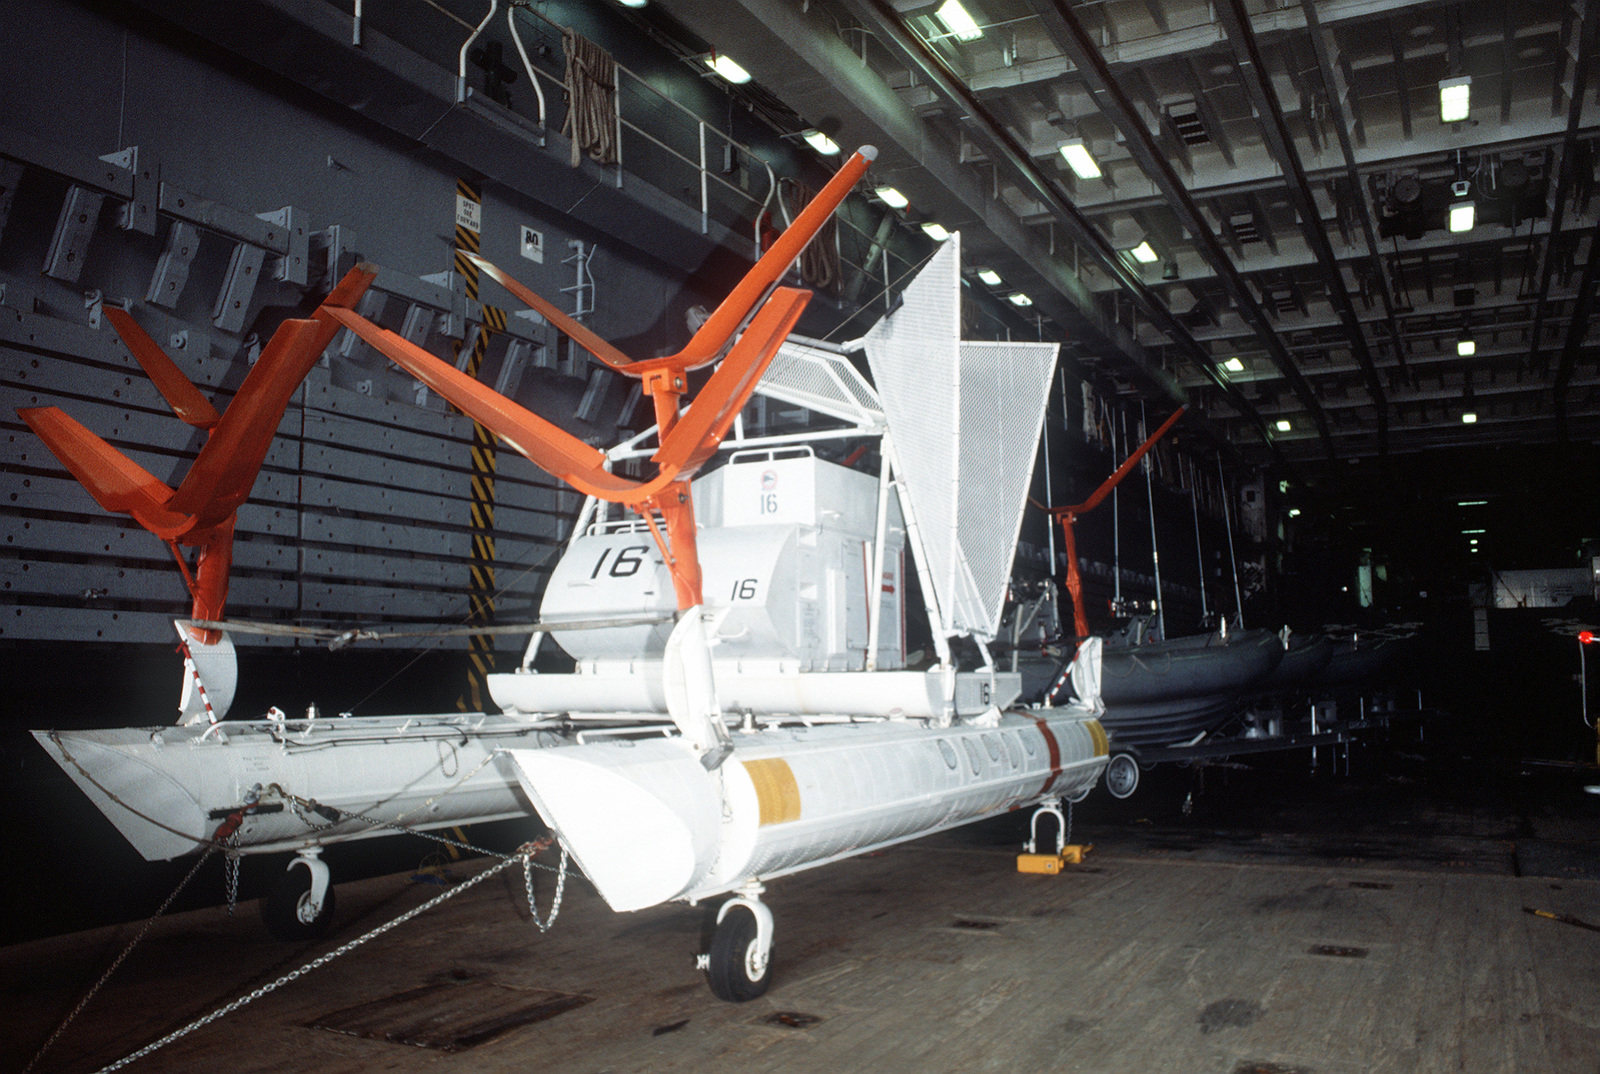 A view of a Helicopter Mine Countermeasures Squadron 15 (HM-15) Mark 105 hydrofoil minesweeping sled secured in the well deck of the amphibious transport dock USS DULUTH (LPD-6). The DULUTH is acting as a platform for HM-15 operations during the joint U.S. - Canadian fleet exercise MARCOT '93